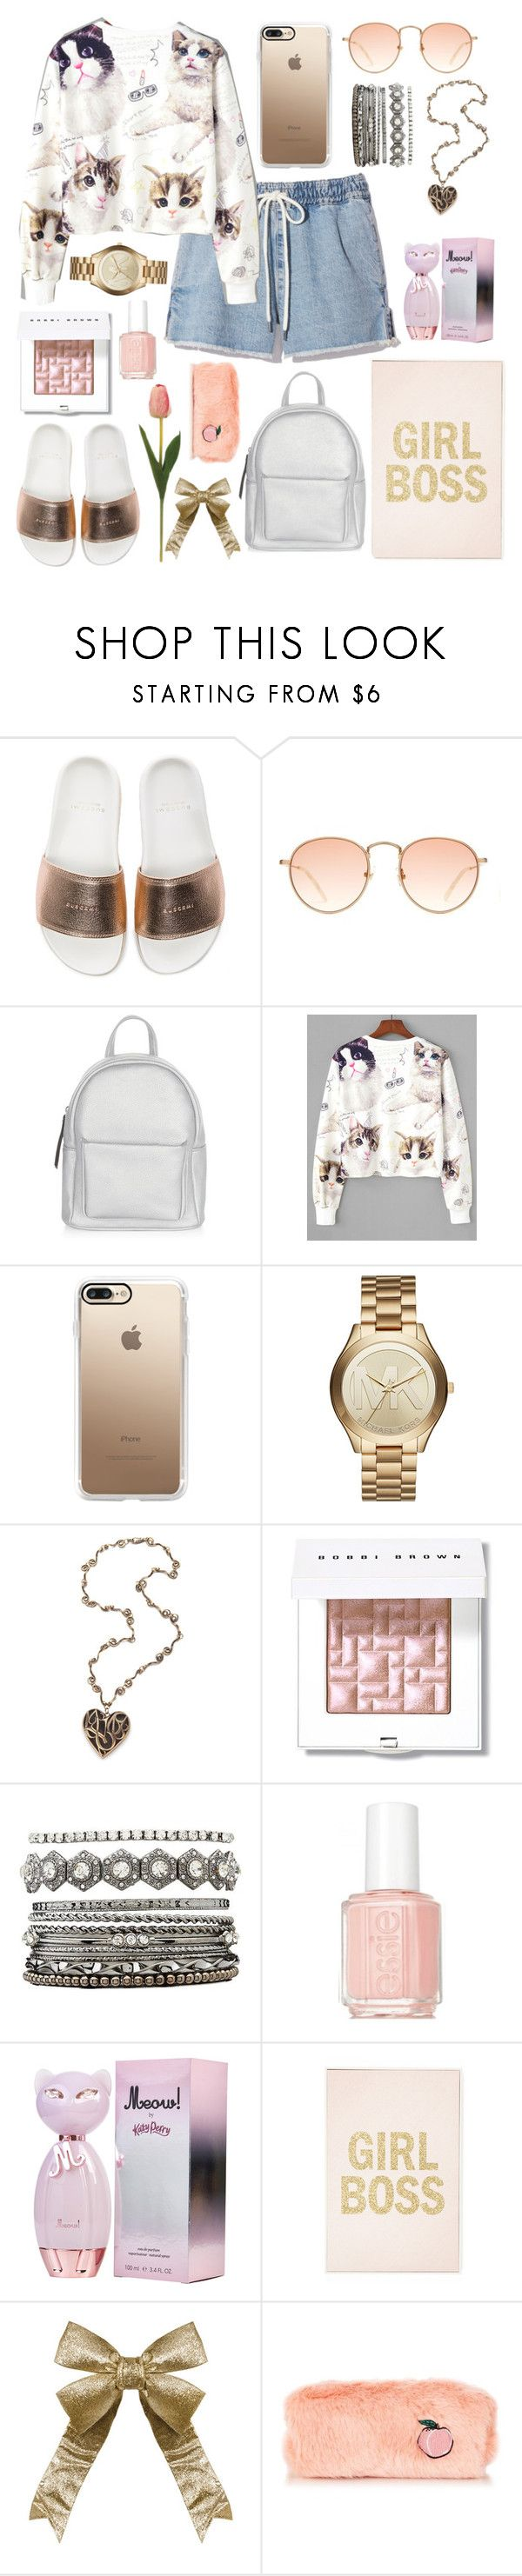 """Untitled #698"" by hebaamir ❤ liked on Polyvore featuring BUSCEMI, New Look, Casetify, Michael Kors, Bobbi Brown Cosmetics, Charlotte Russe and Essie"